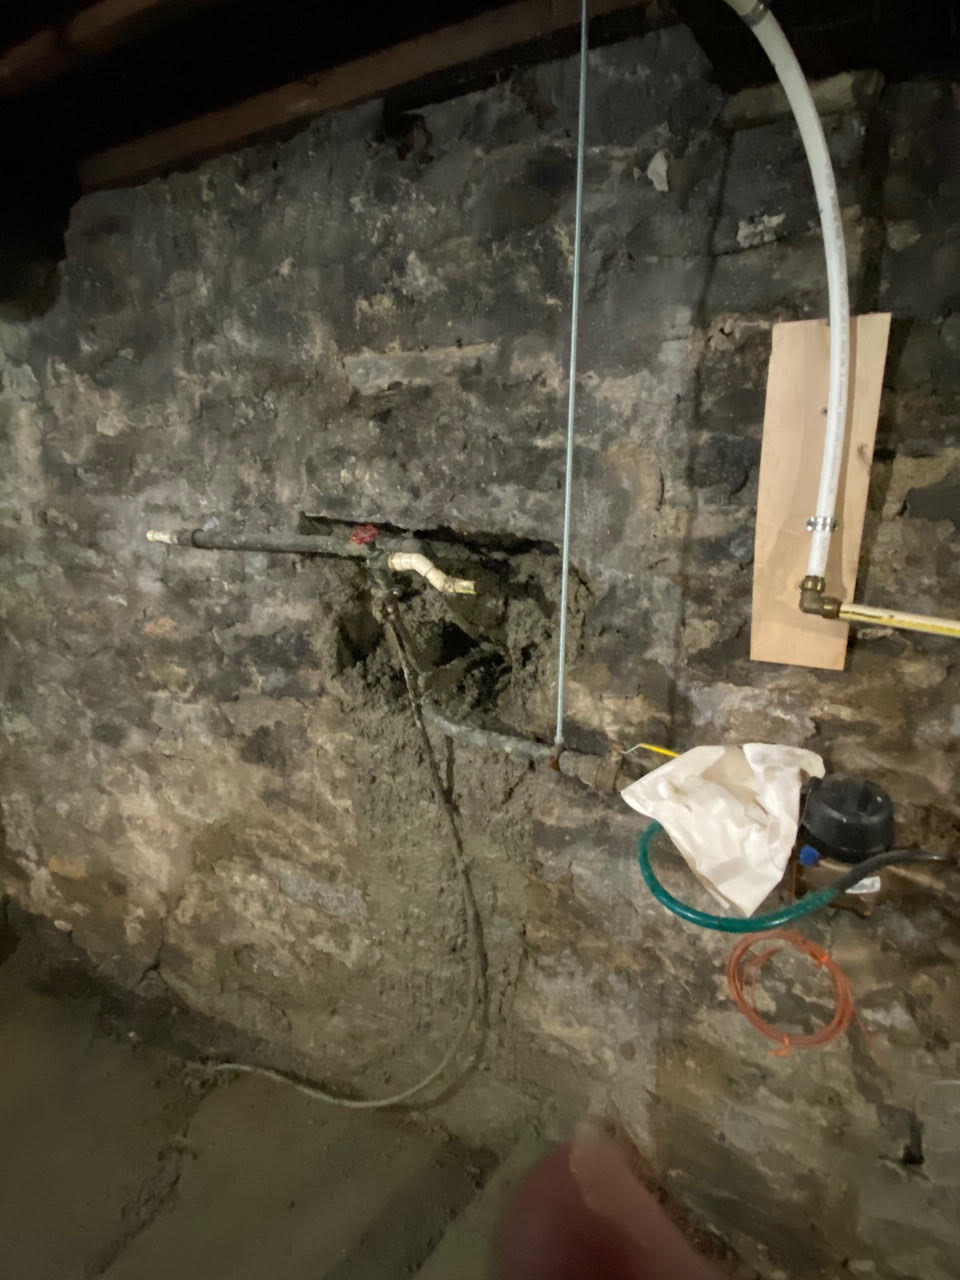 Some business owners in the Short North are still trying to get on their feet after closing due to COVID-19. Now, they are dealing with thousands of dollars worth of damage from basement flooding issues. (Photo courtesy: Ben Stoyka)